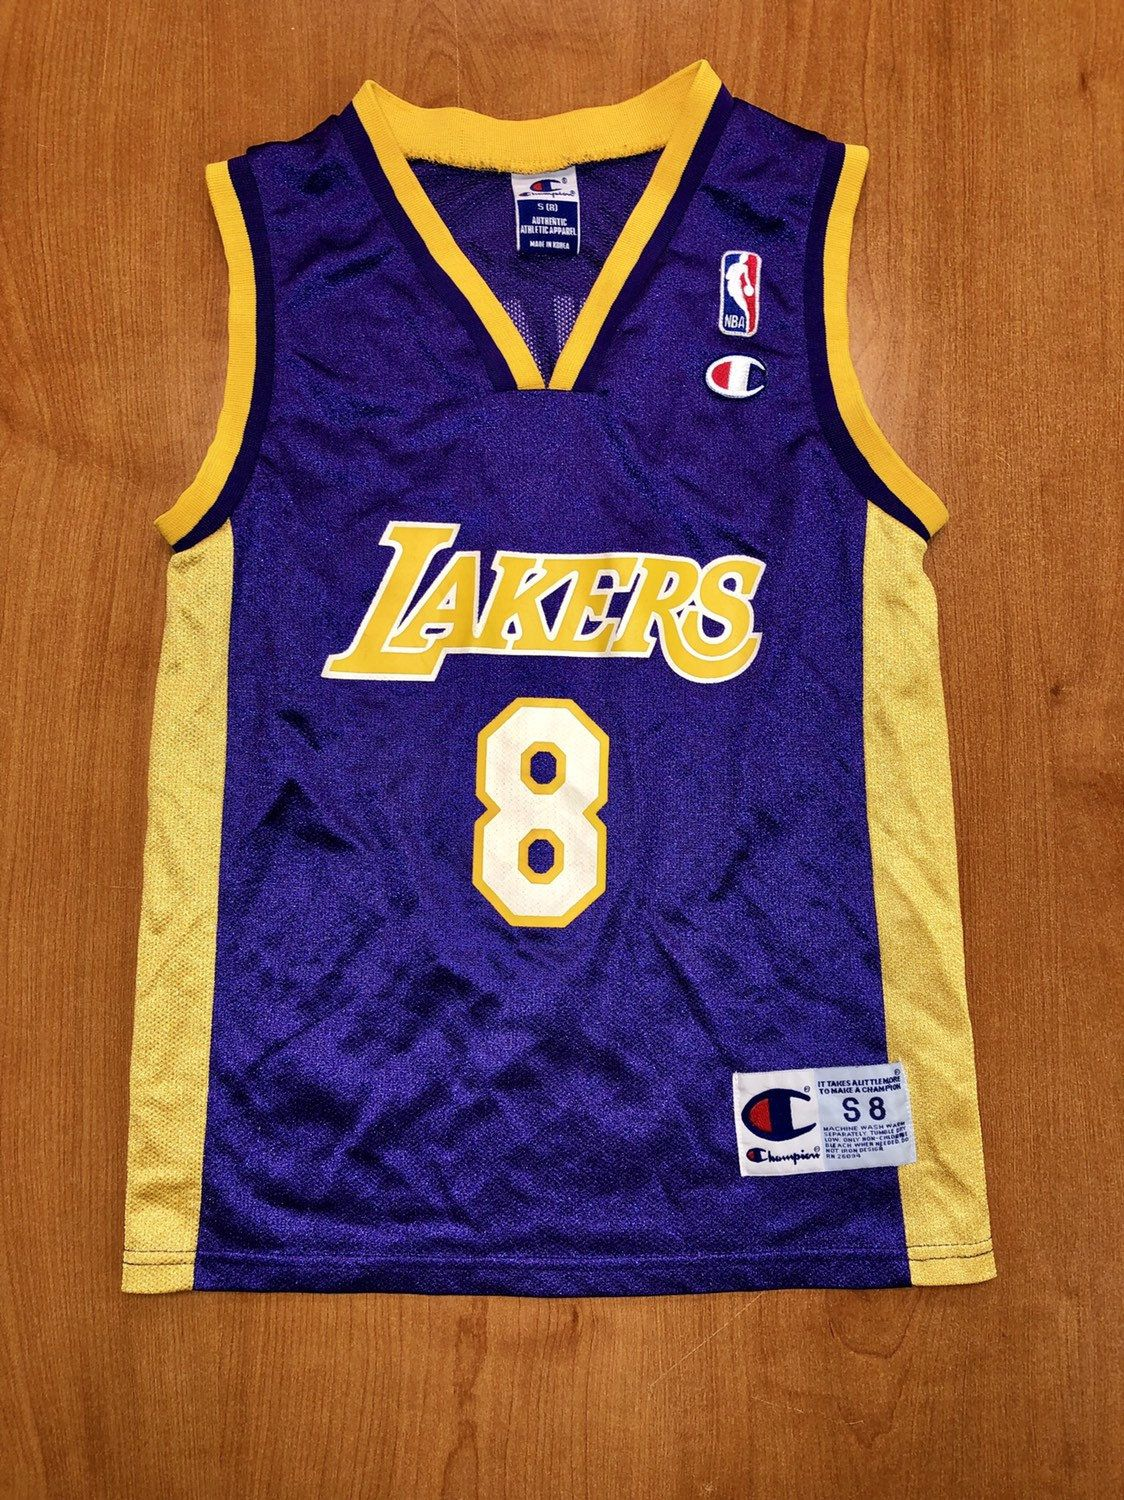 b5e36ae1cbb Vintage 1999 Kobe Bryant LA Los Angeles Lakers Champion Jersey Size Youth  Small shaquille o'neal magic johnson nba finals kids lower merion by ...